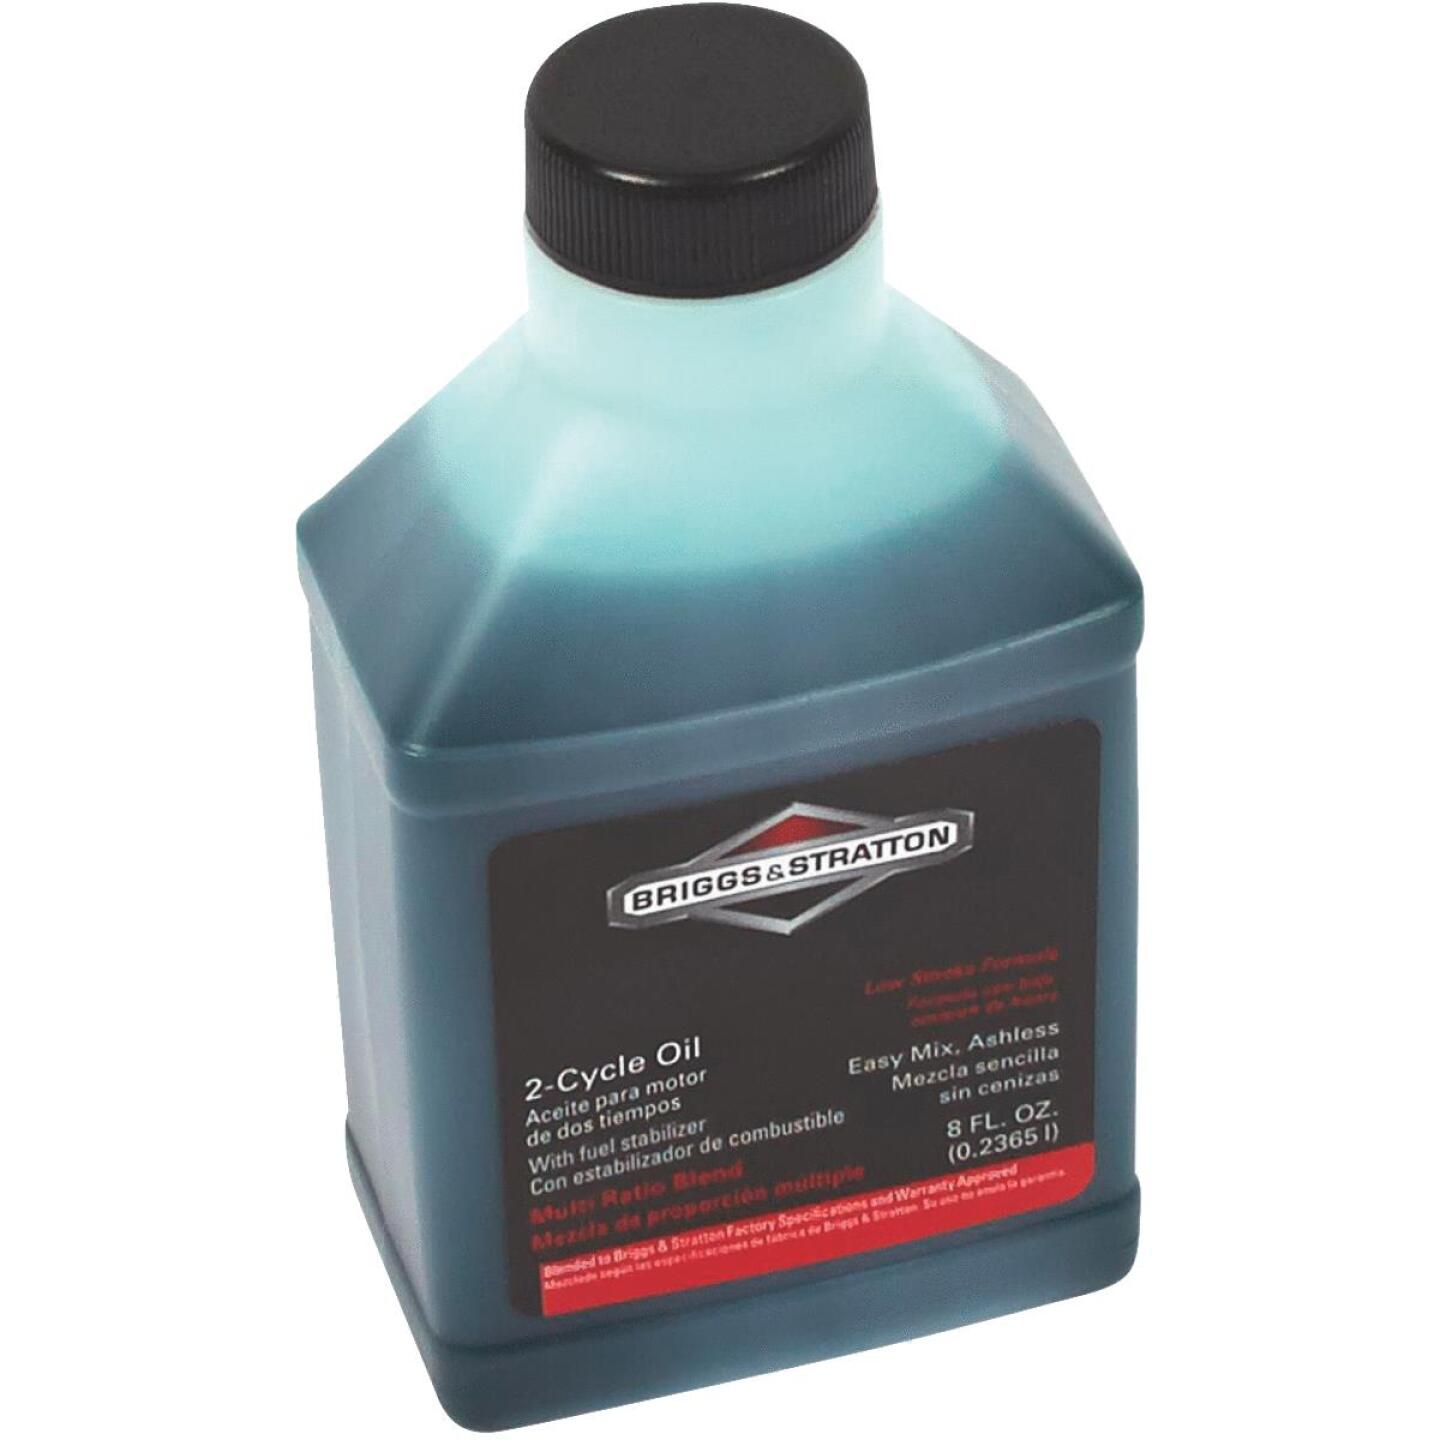 Briggs & Stratton 8 Oz. Ashless 2-Cycle Motor Oil Image 1